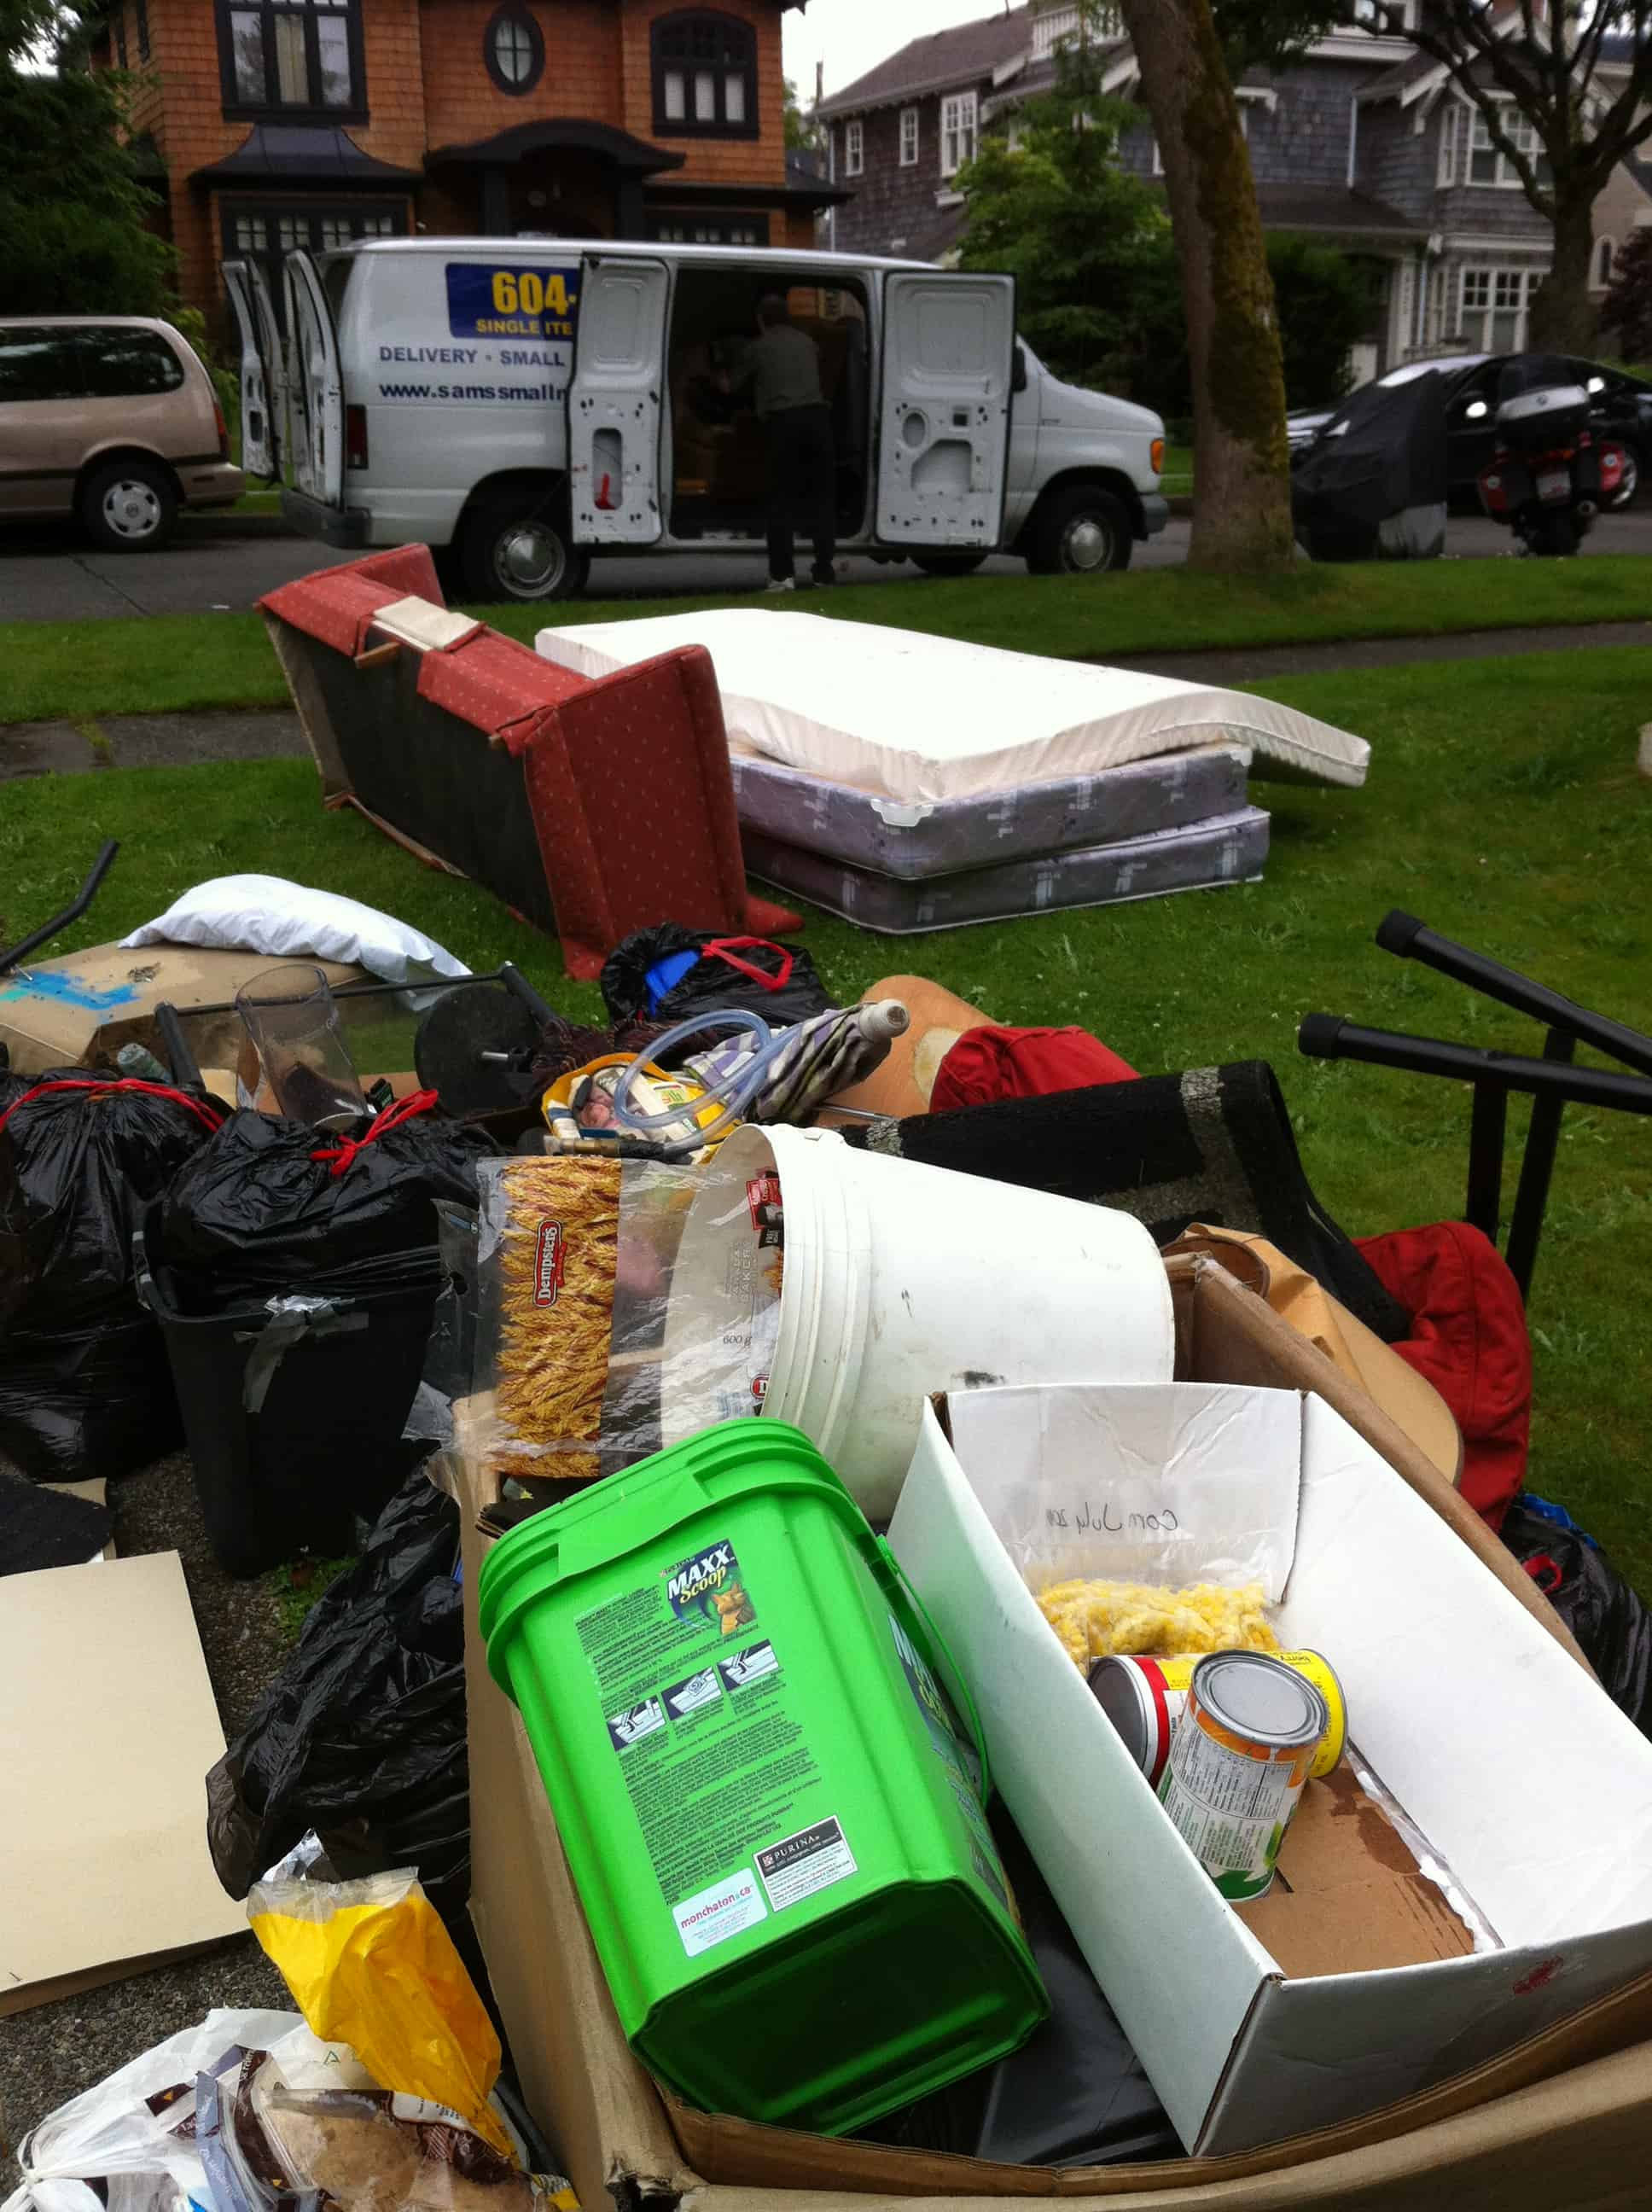 Clutter - Boxes of Miscellaneous Household Junk Removal